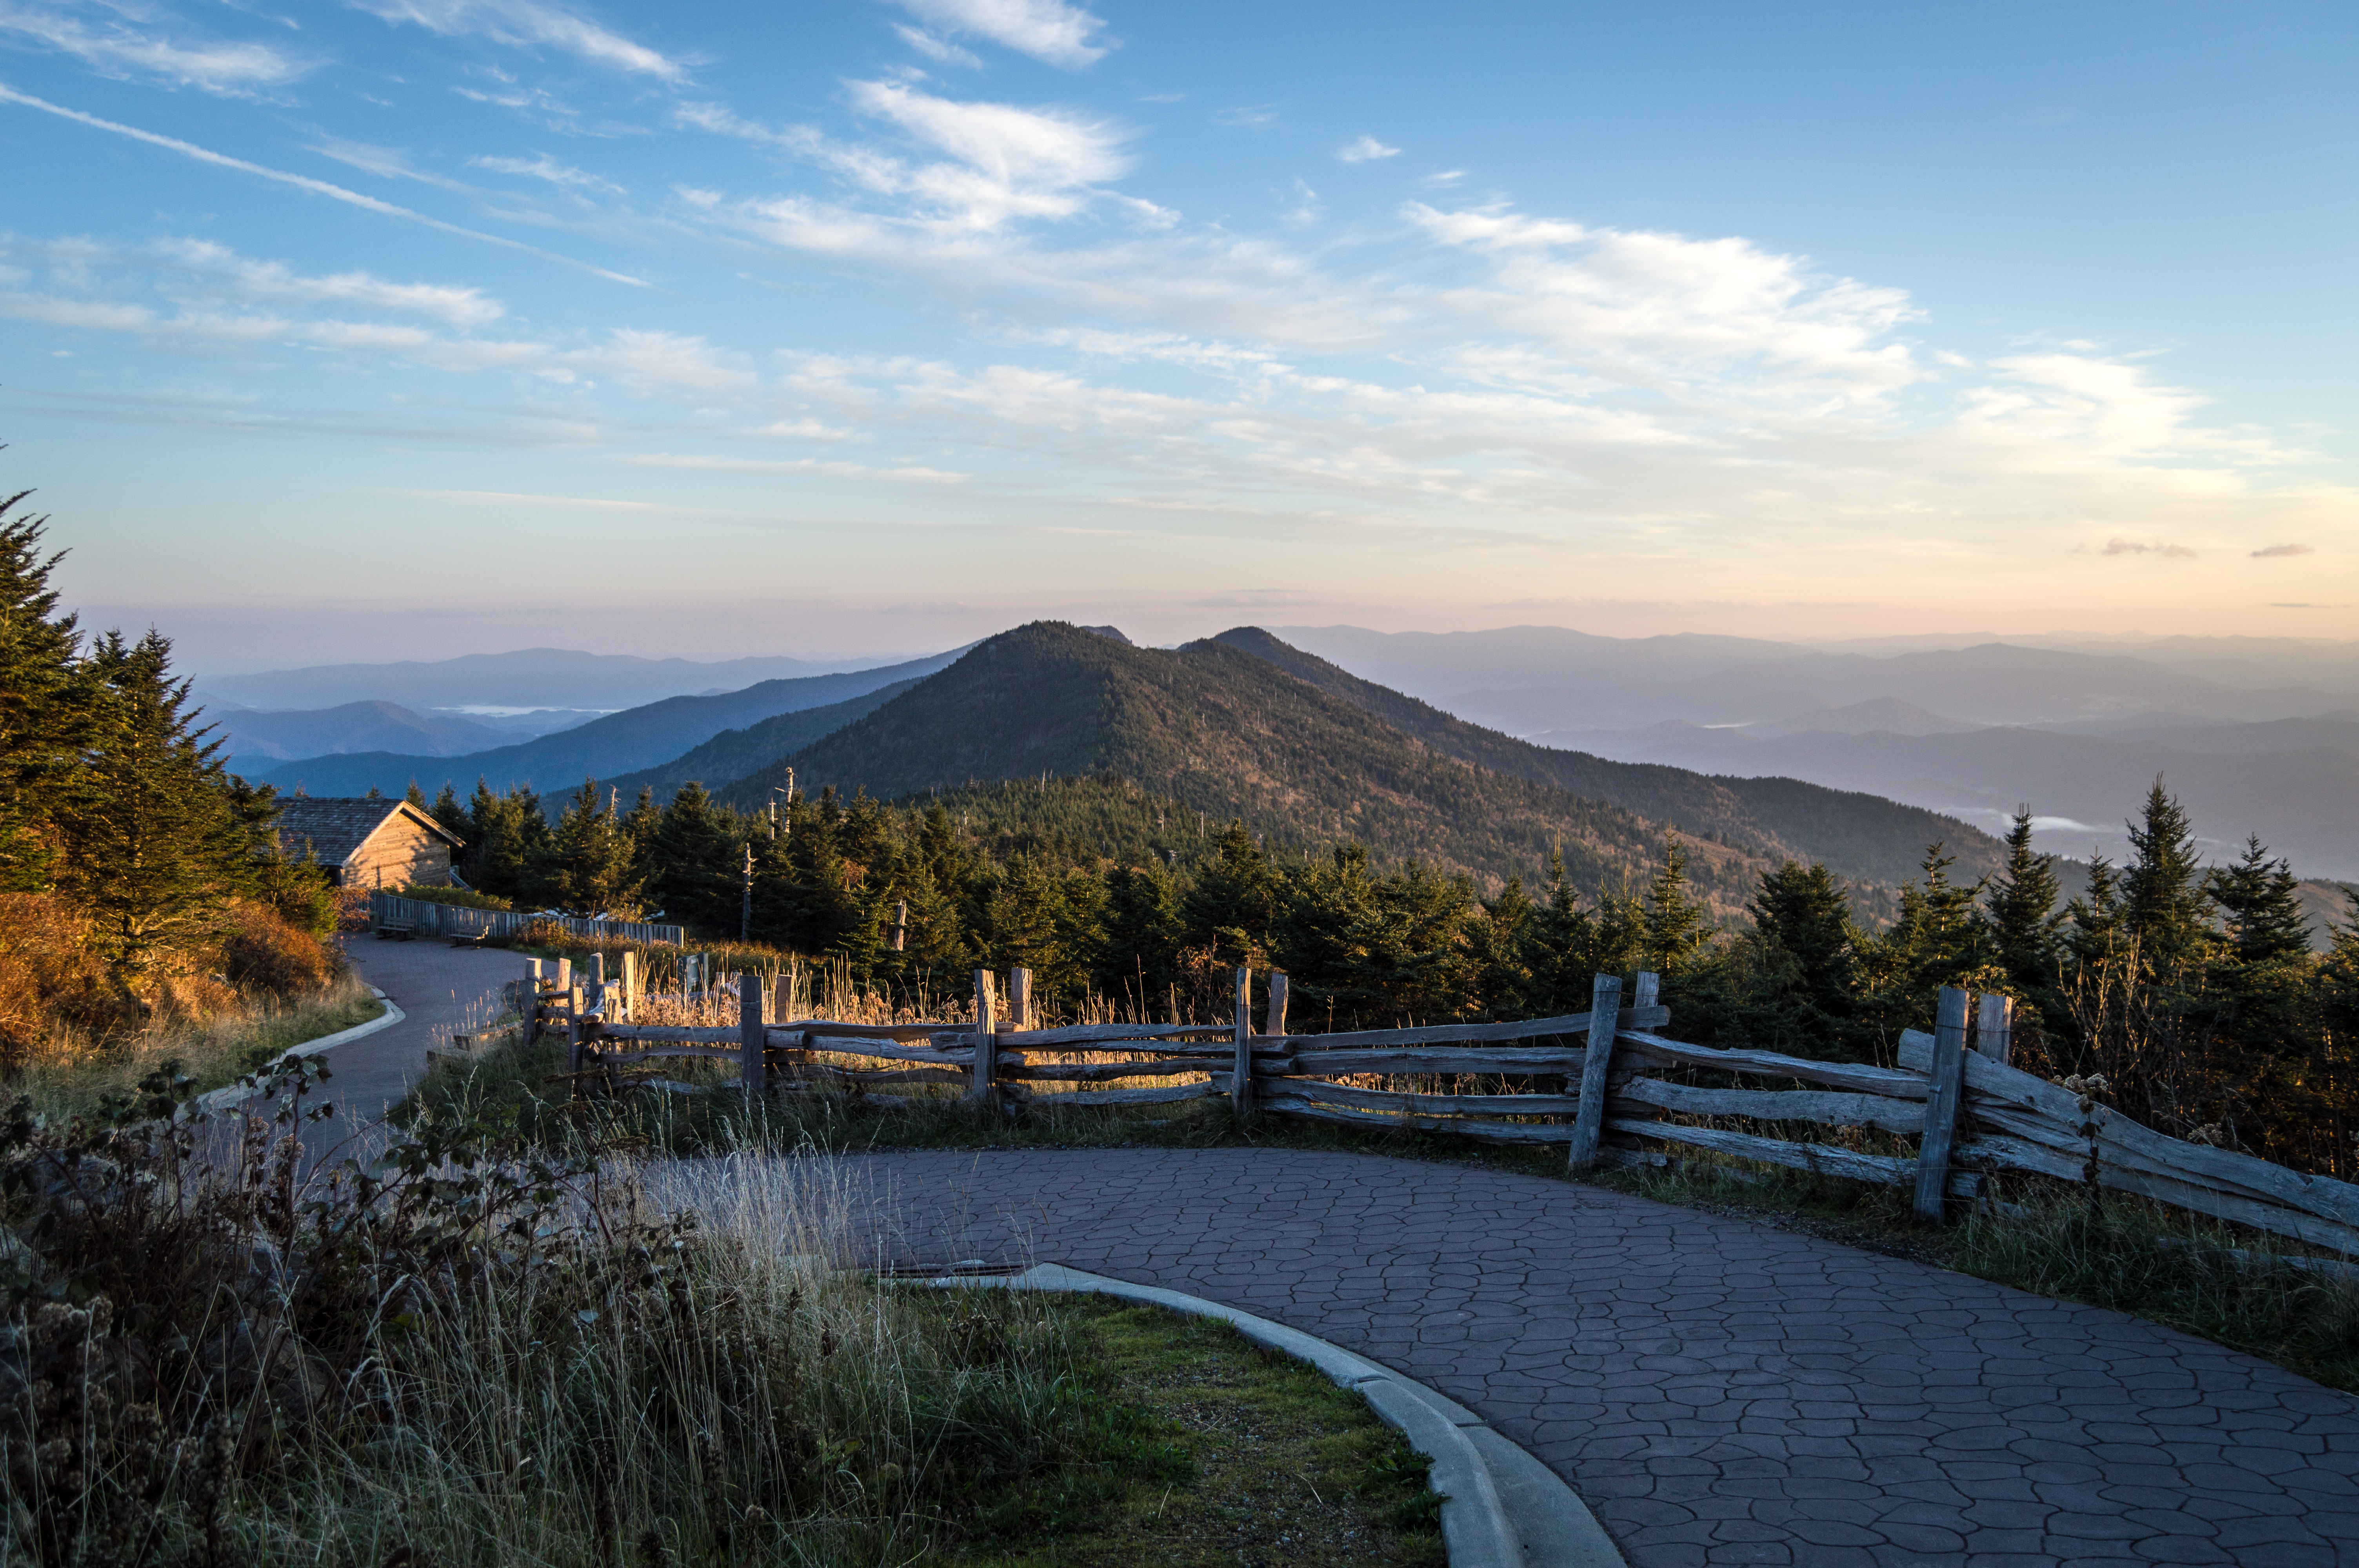 highest peaks | asheville, nc's official travel site